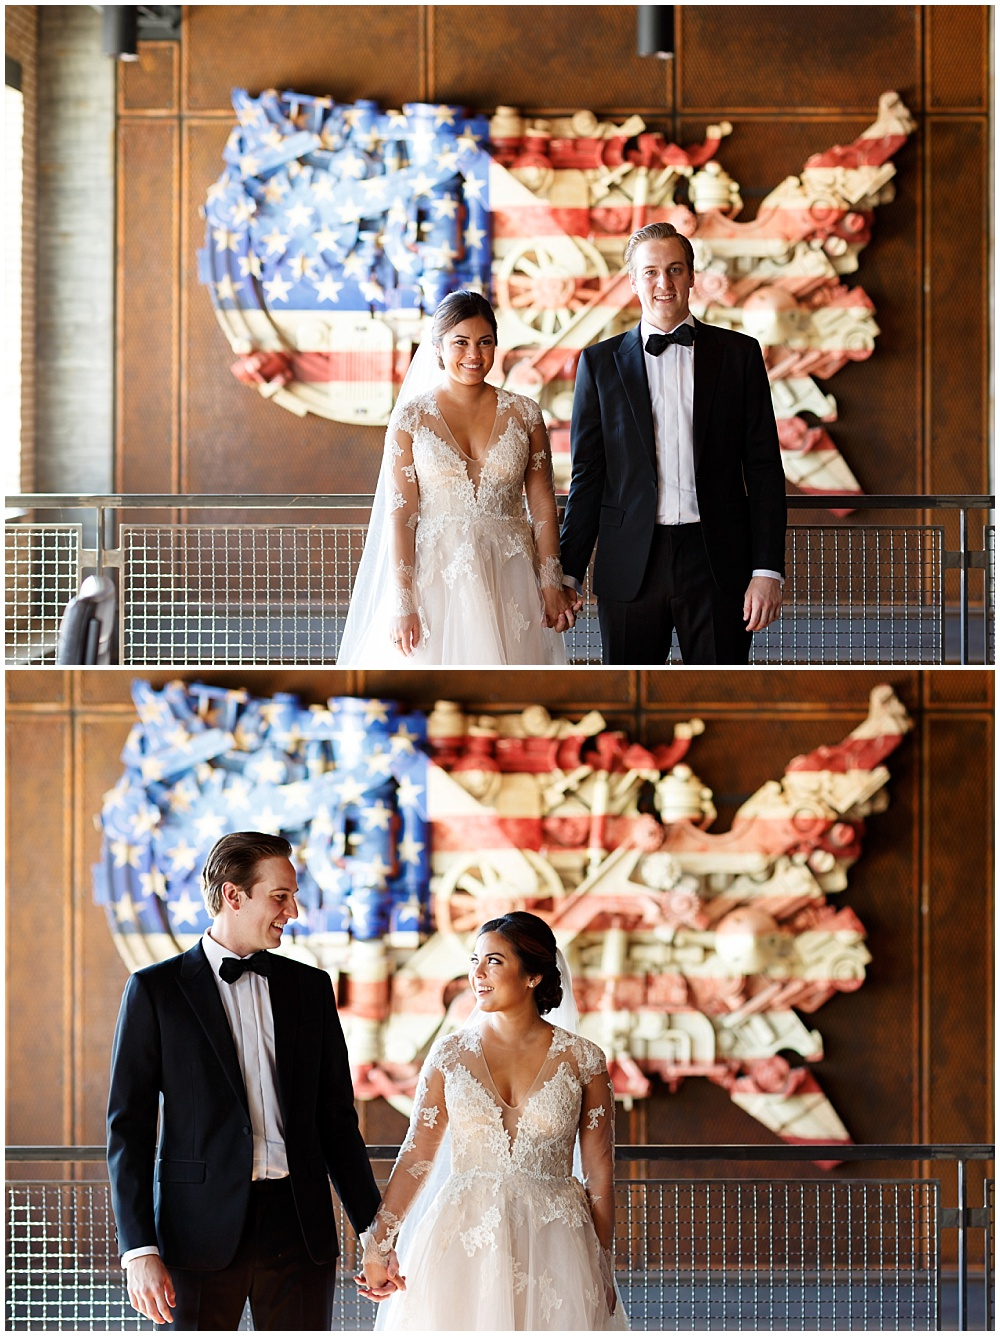 Bride and groom portraits at the Ironworks Hotel | Fall Indianapolis Traders Point Creamery garden wedding - fall, rustic details with an abundance of wedding blooms, velvet linens and fun details with Bobbi Photo and Jessica Dum Wedding Coordination